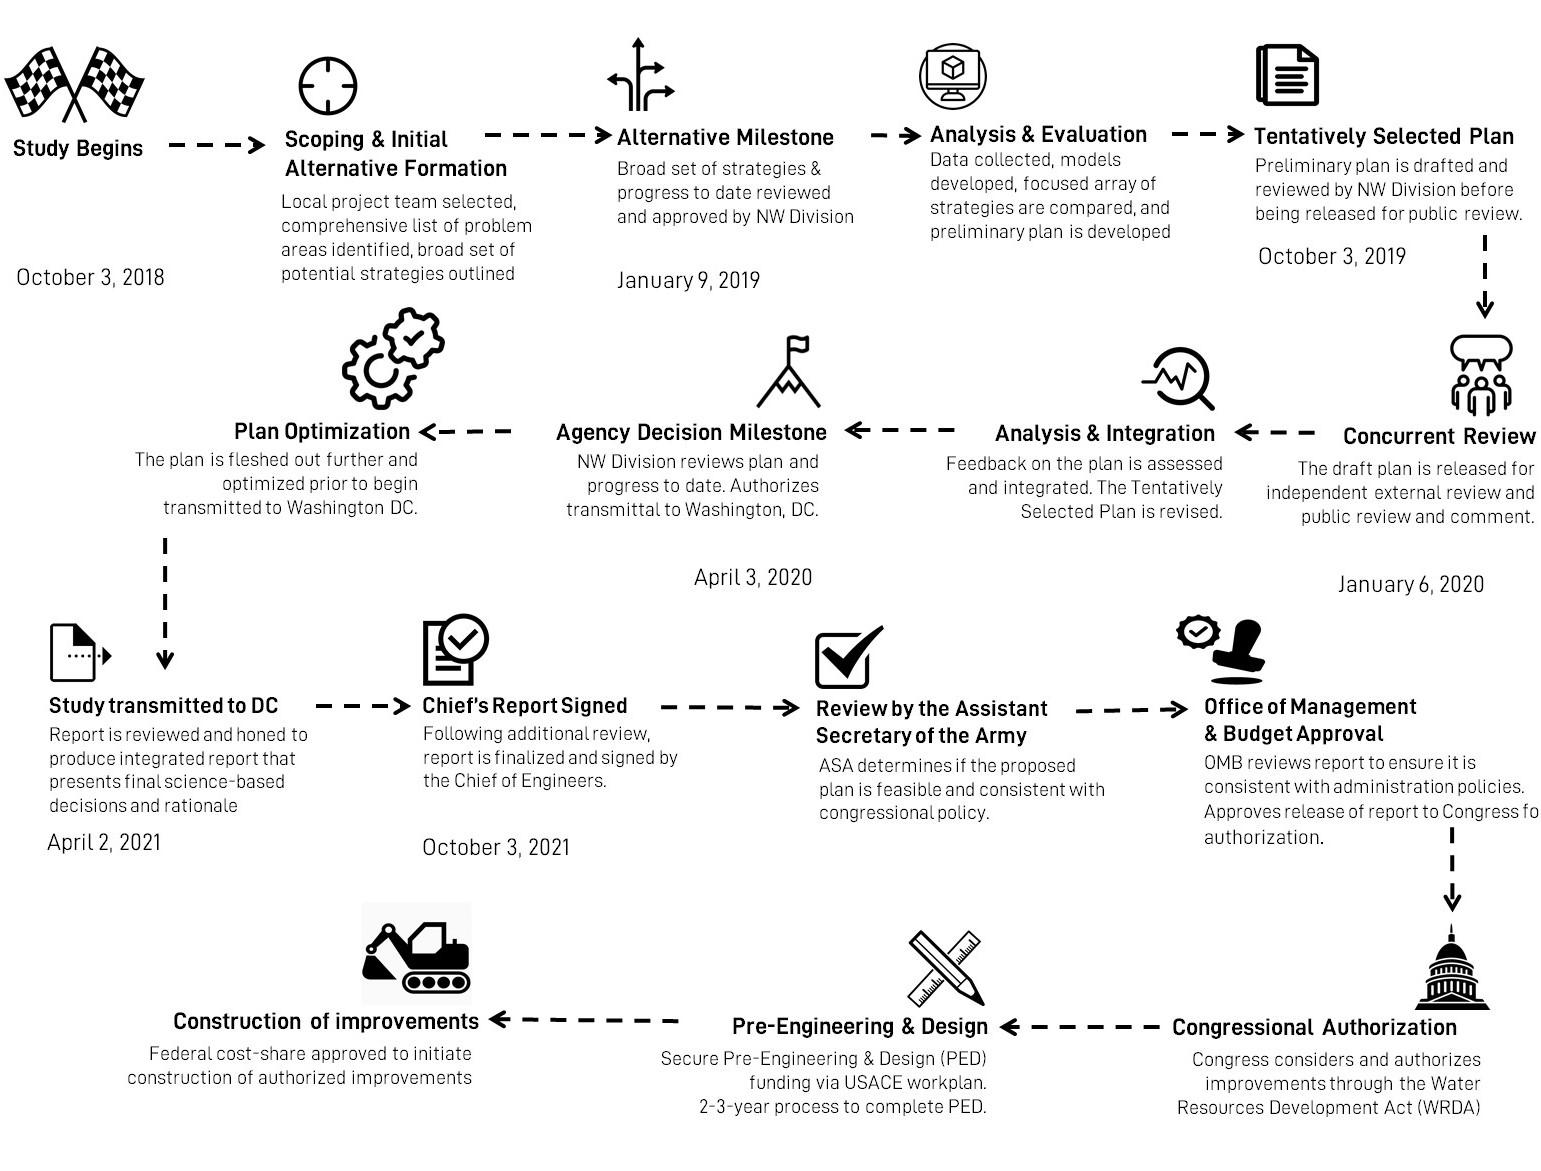 Graphic depicting the timeline and process for the US Army Corps of Engineers Feasibility Study